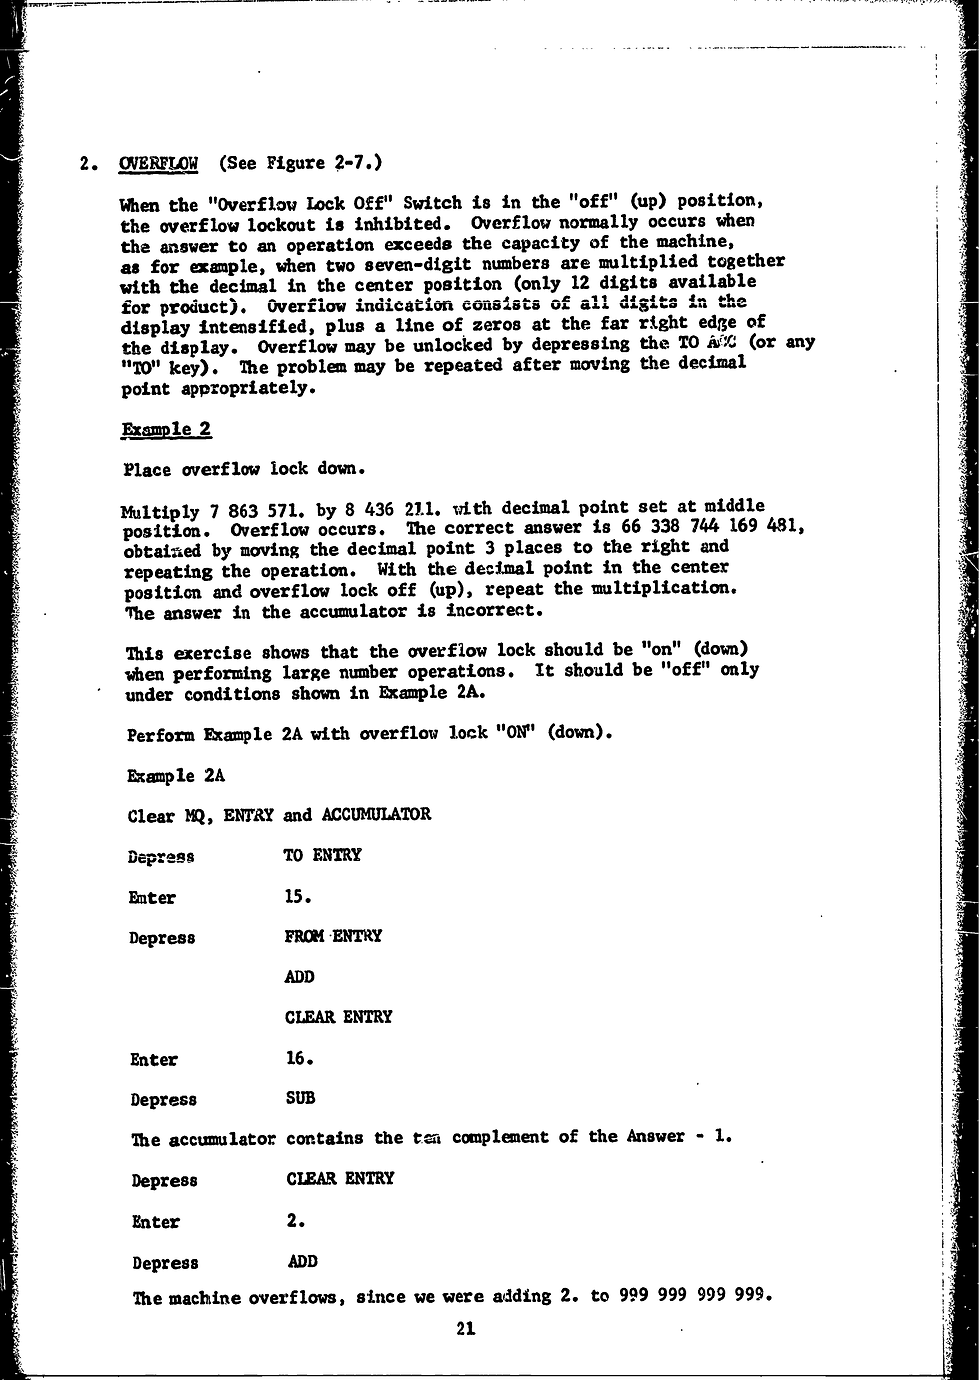 WYLE Instruction_Page_031_Image_0001.tif